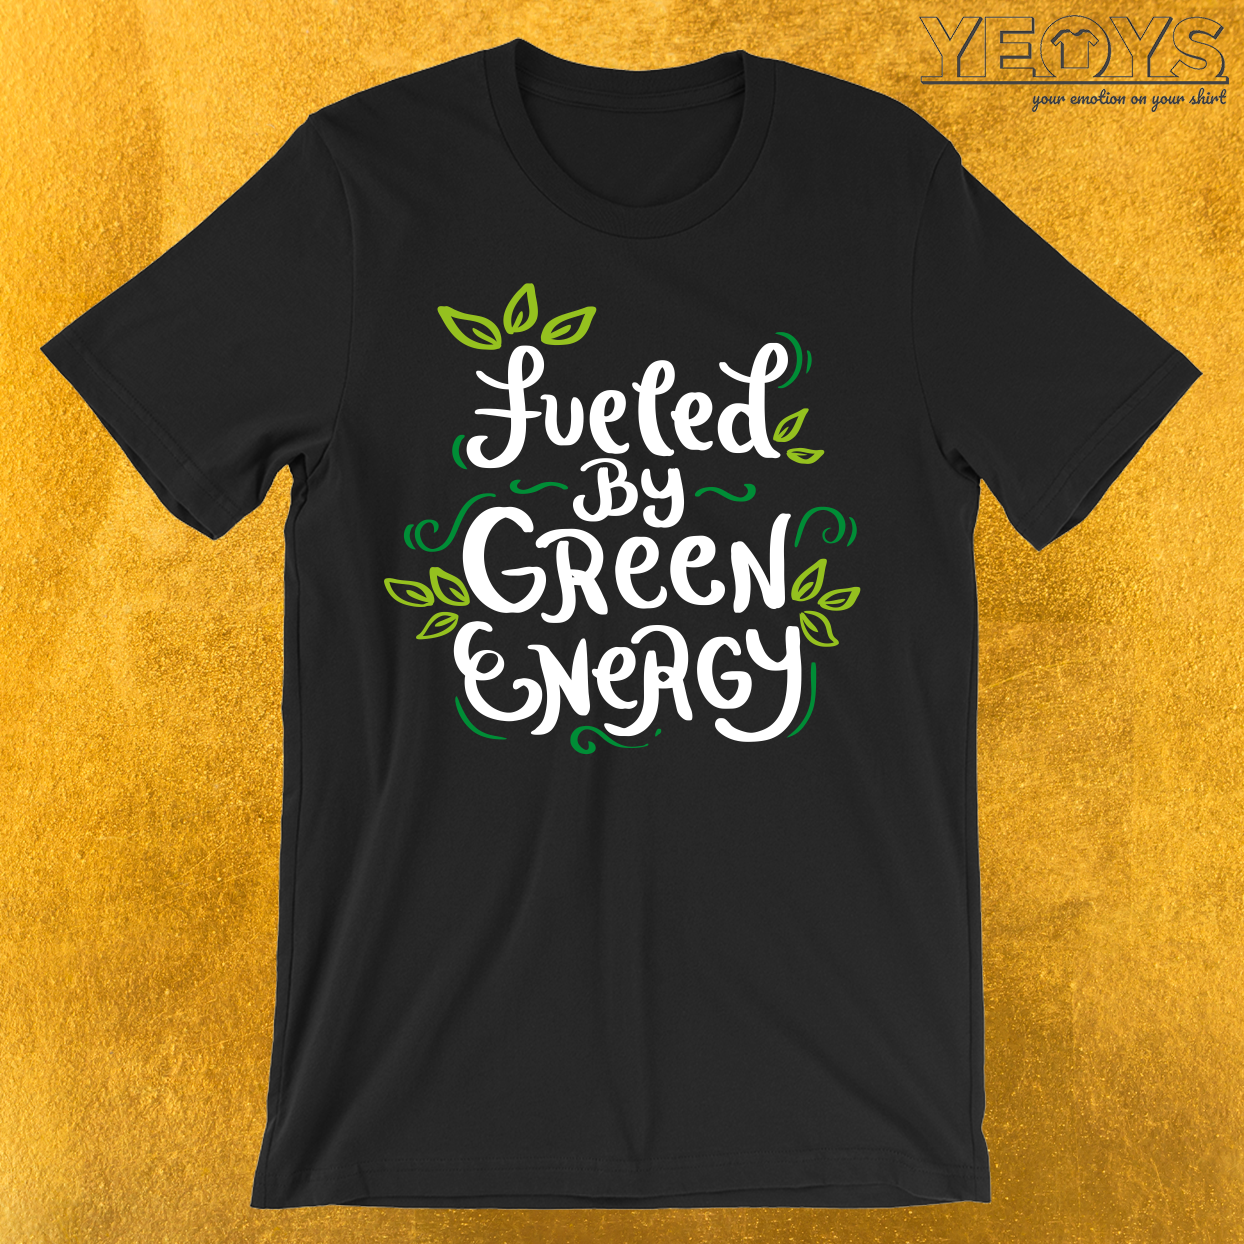 Fueled by Green Energy T-Shirt